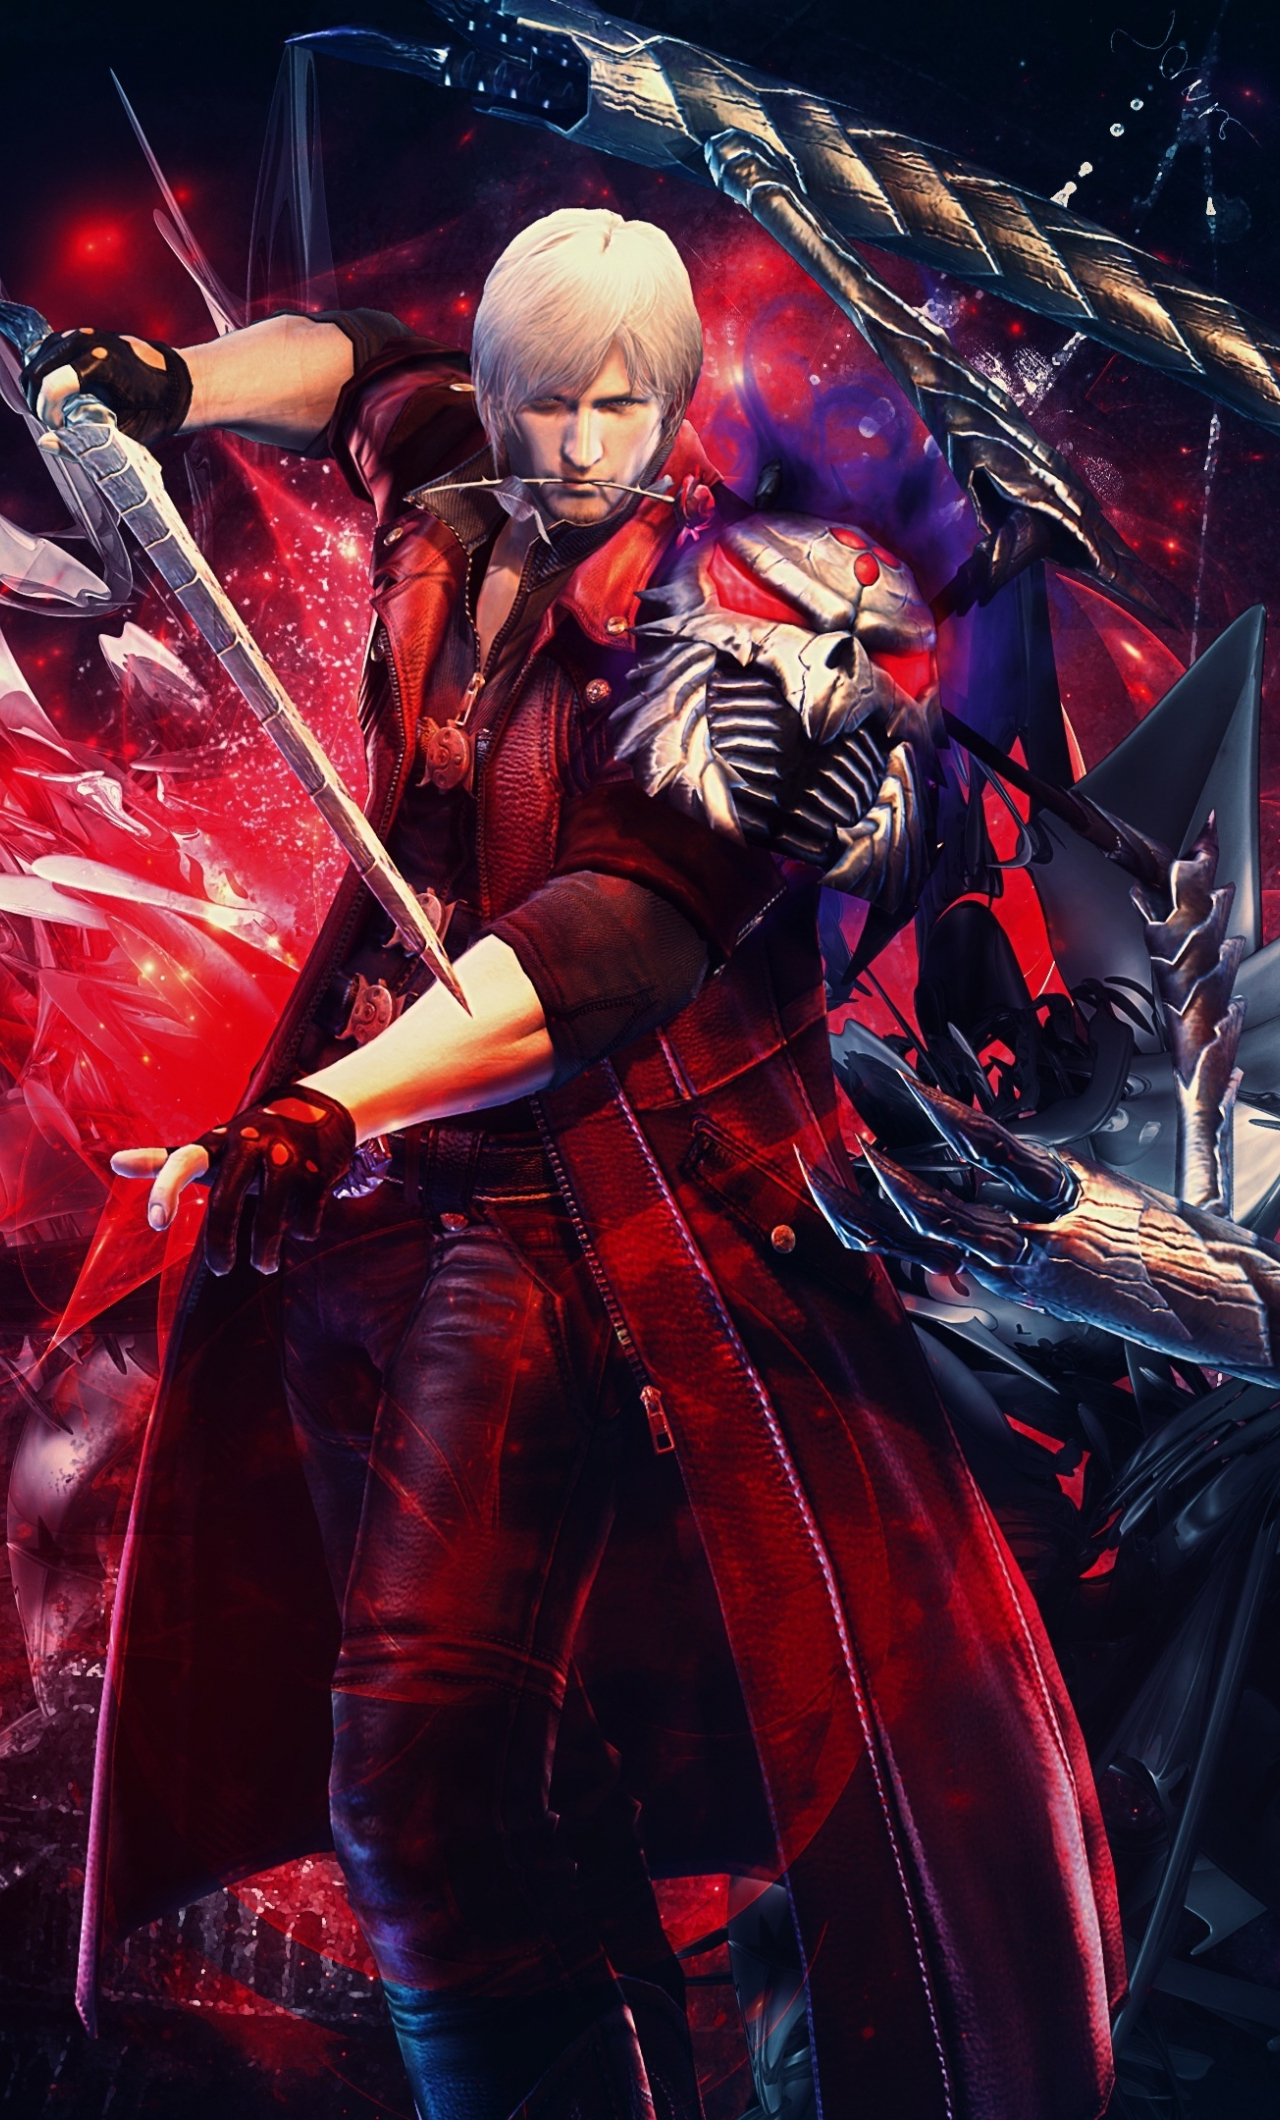 Download 1280x2120 Wallpaper Capcom Devil May Cry Warrior Video